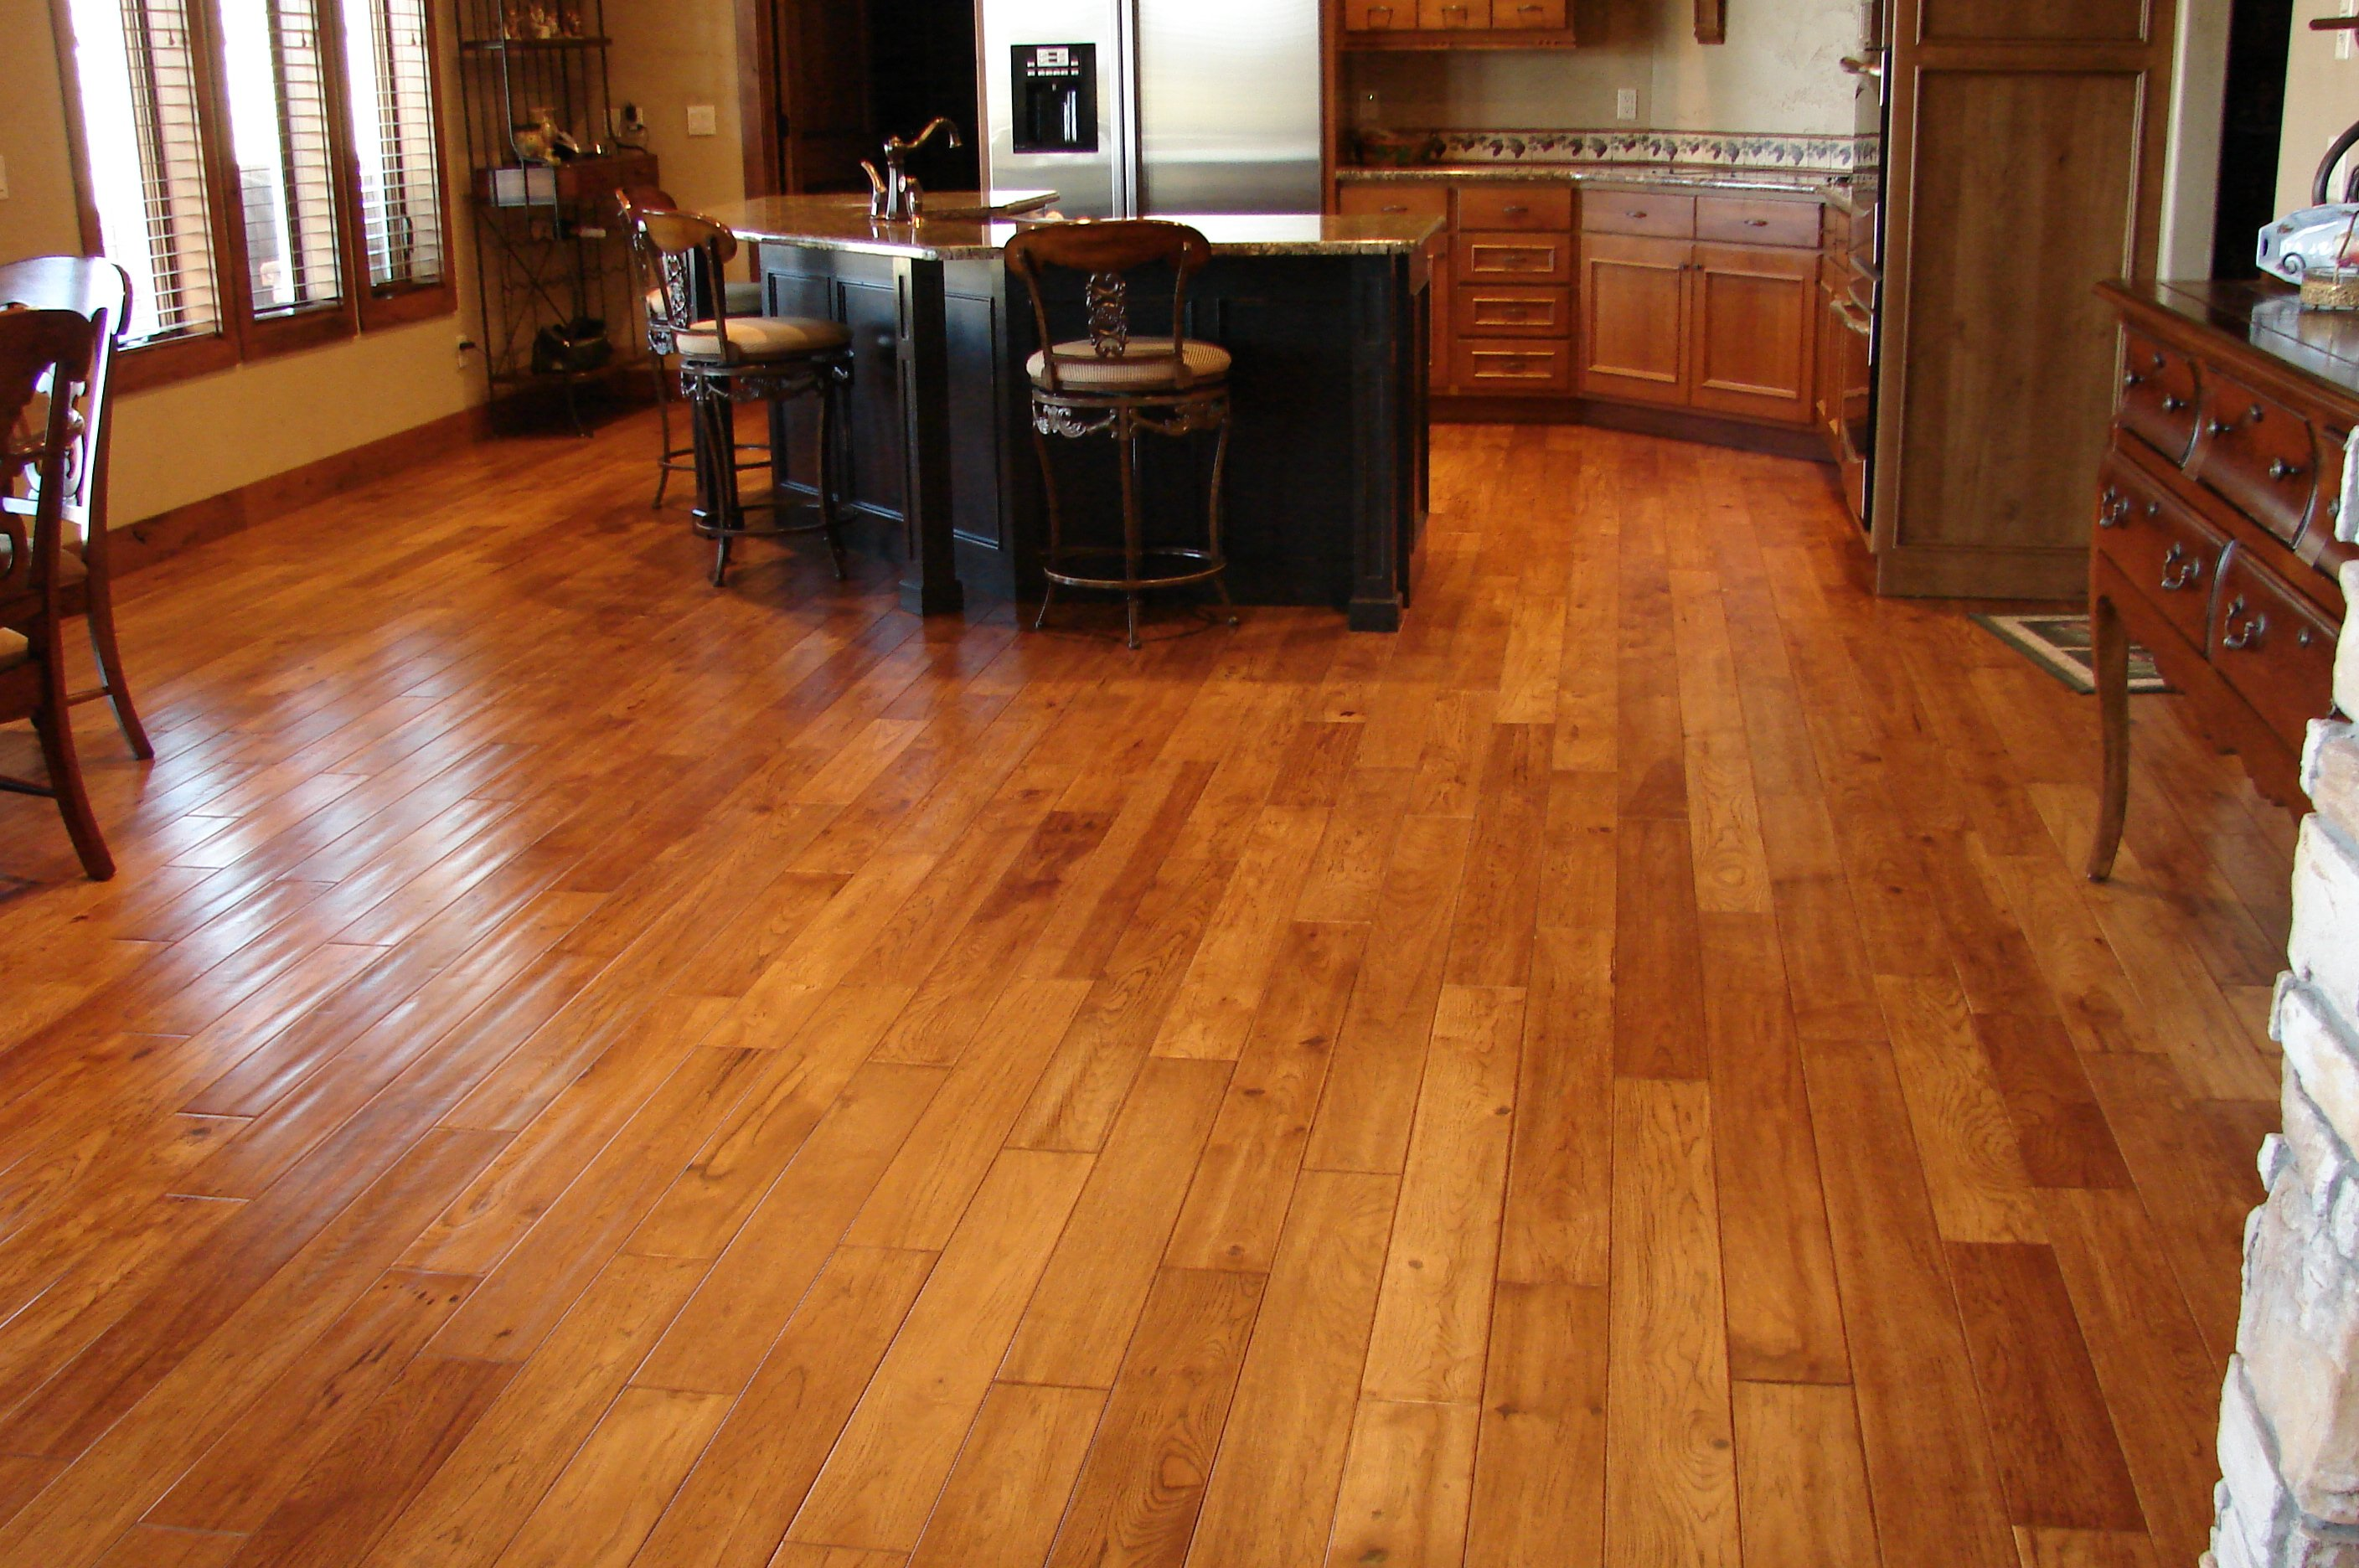 Kitchen Flooring Options Pros And Cons Installing Linoleum Flooring Is It Worth It Homeadvisor